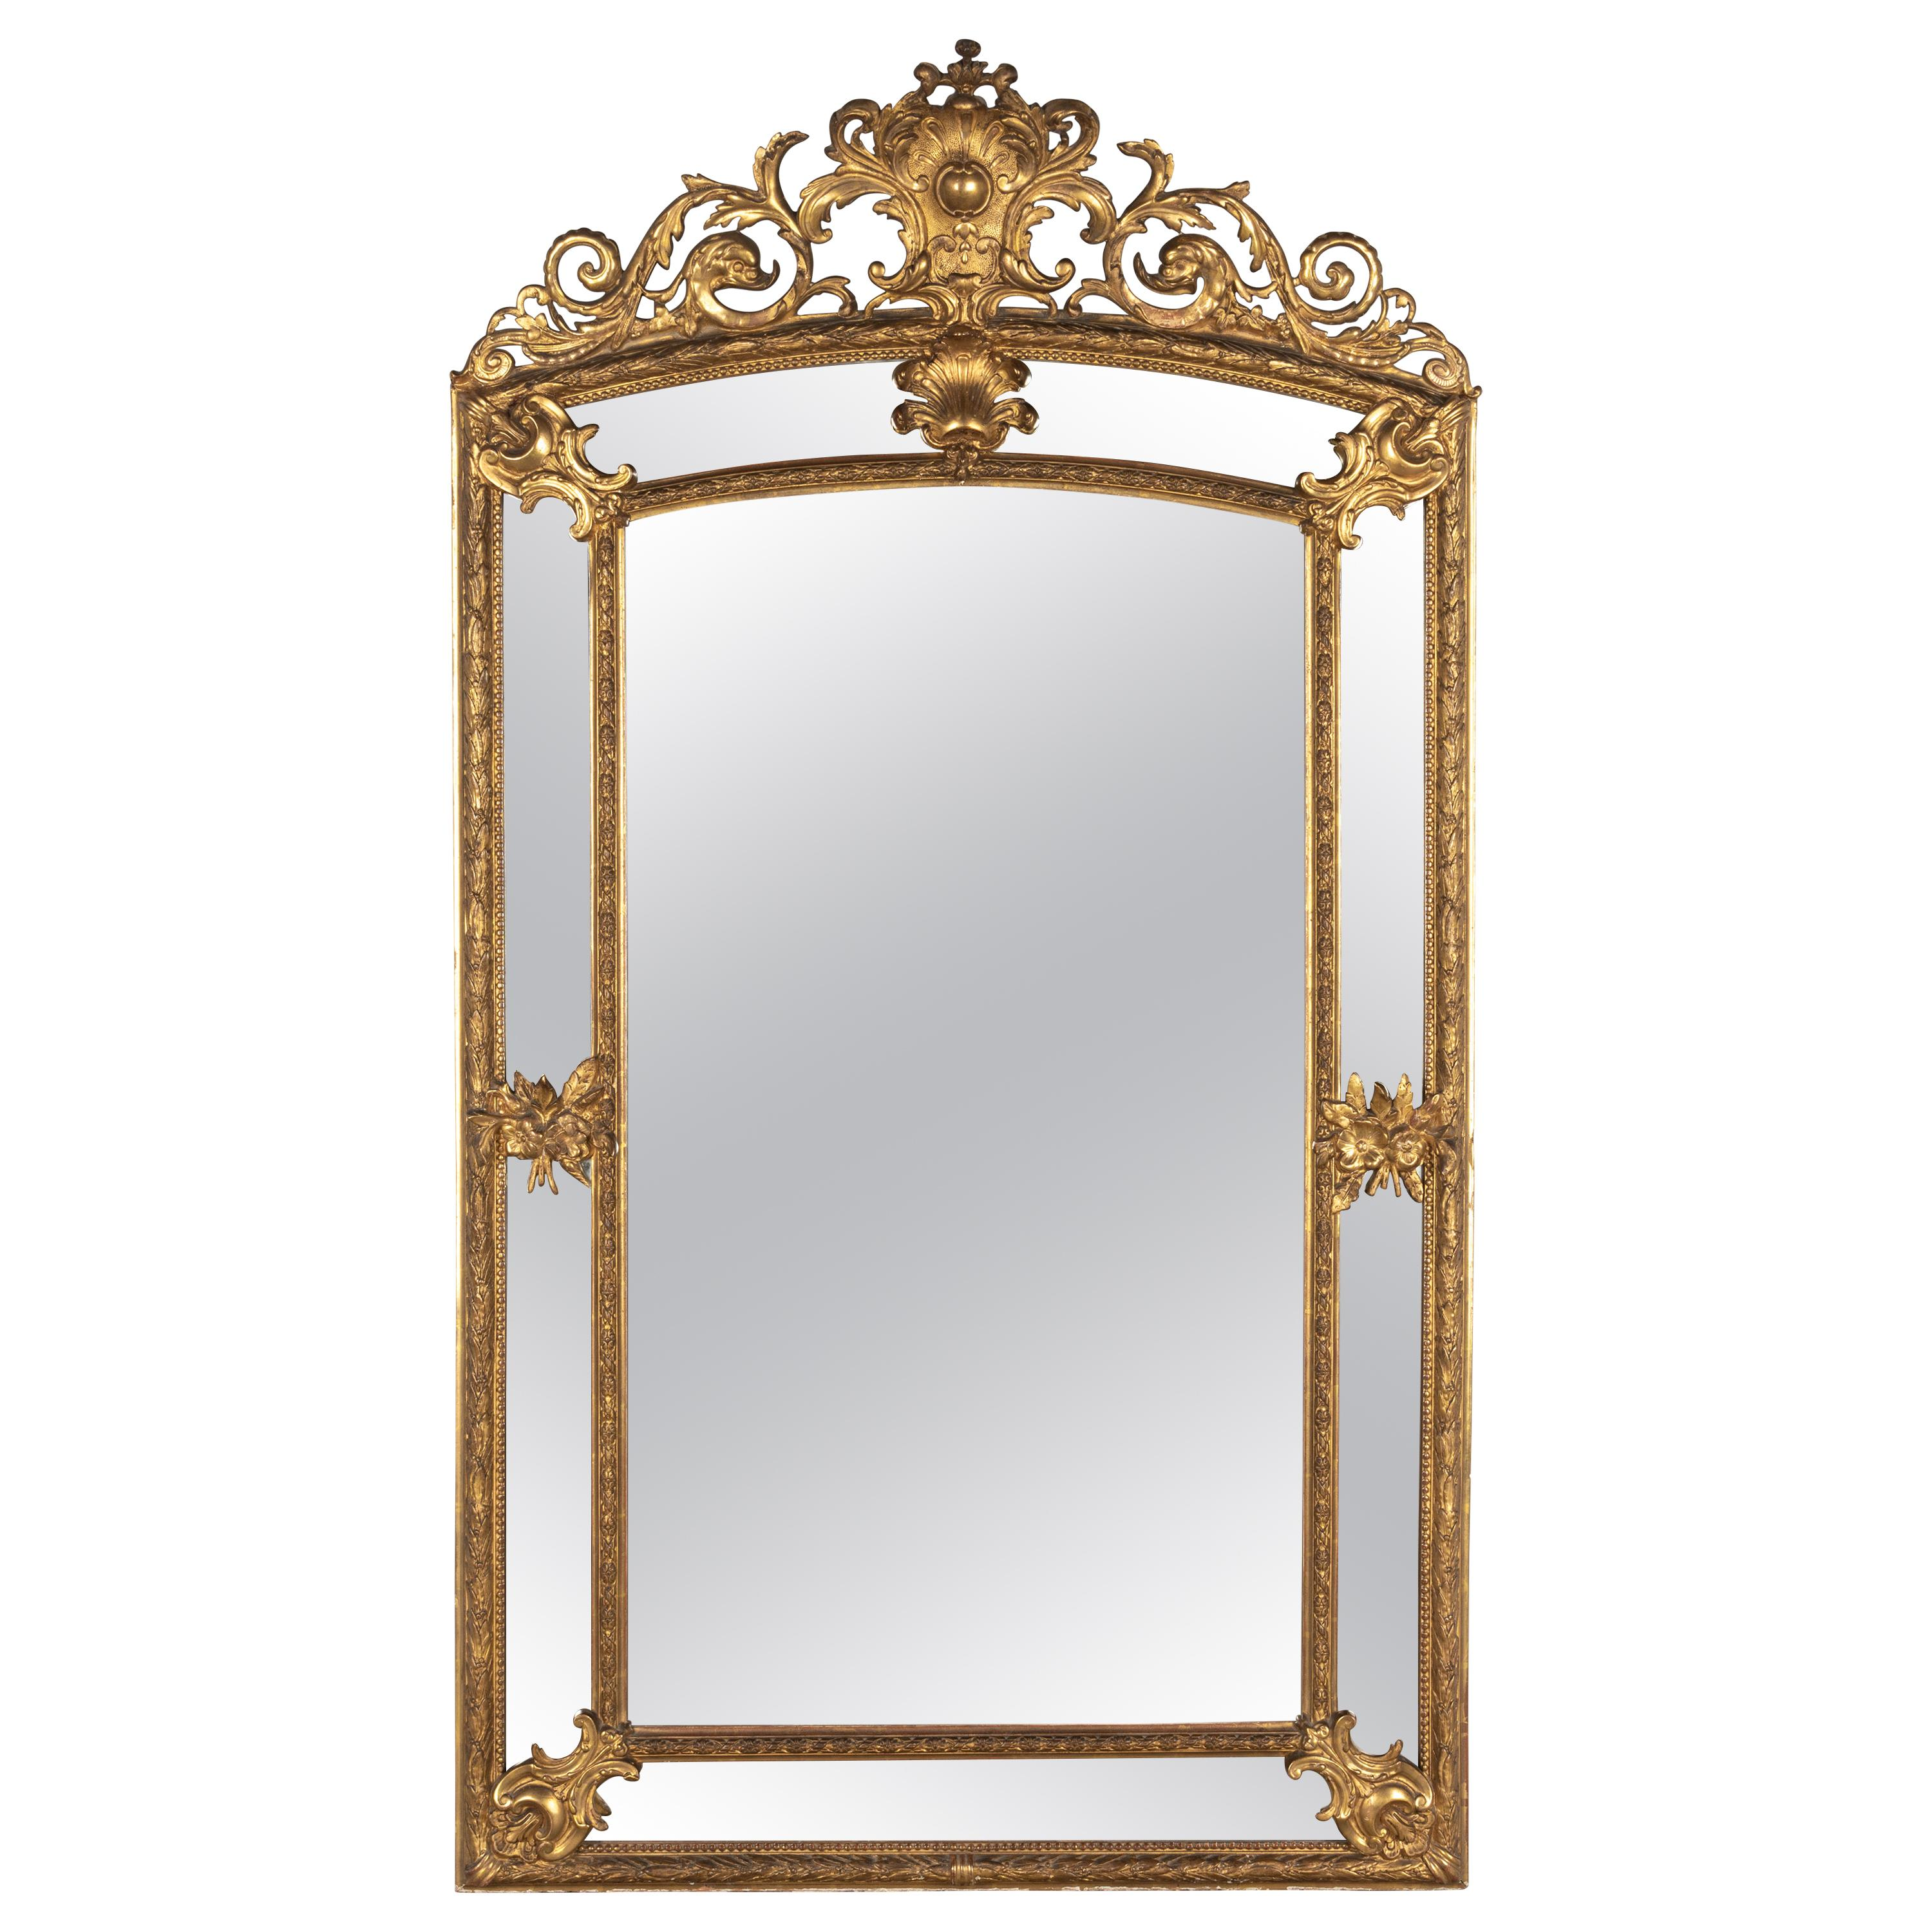 19th Century French Louis XV Style Gilded Parclose Mirror